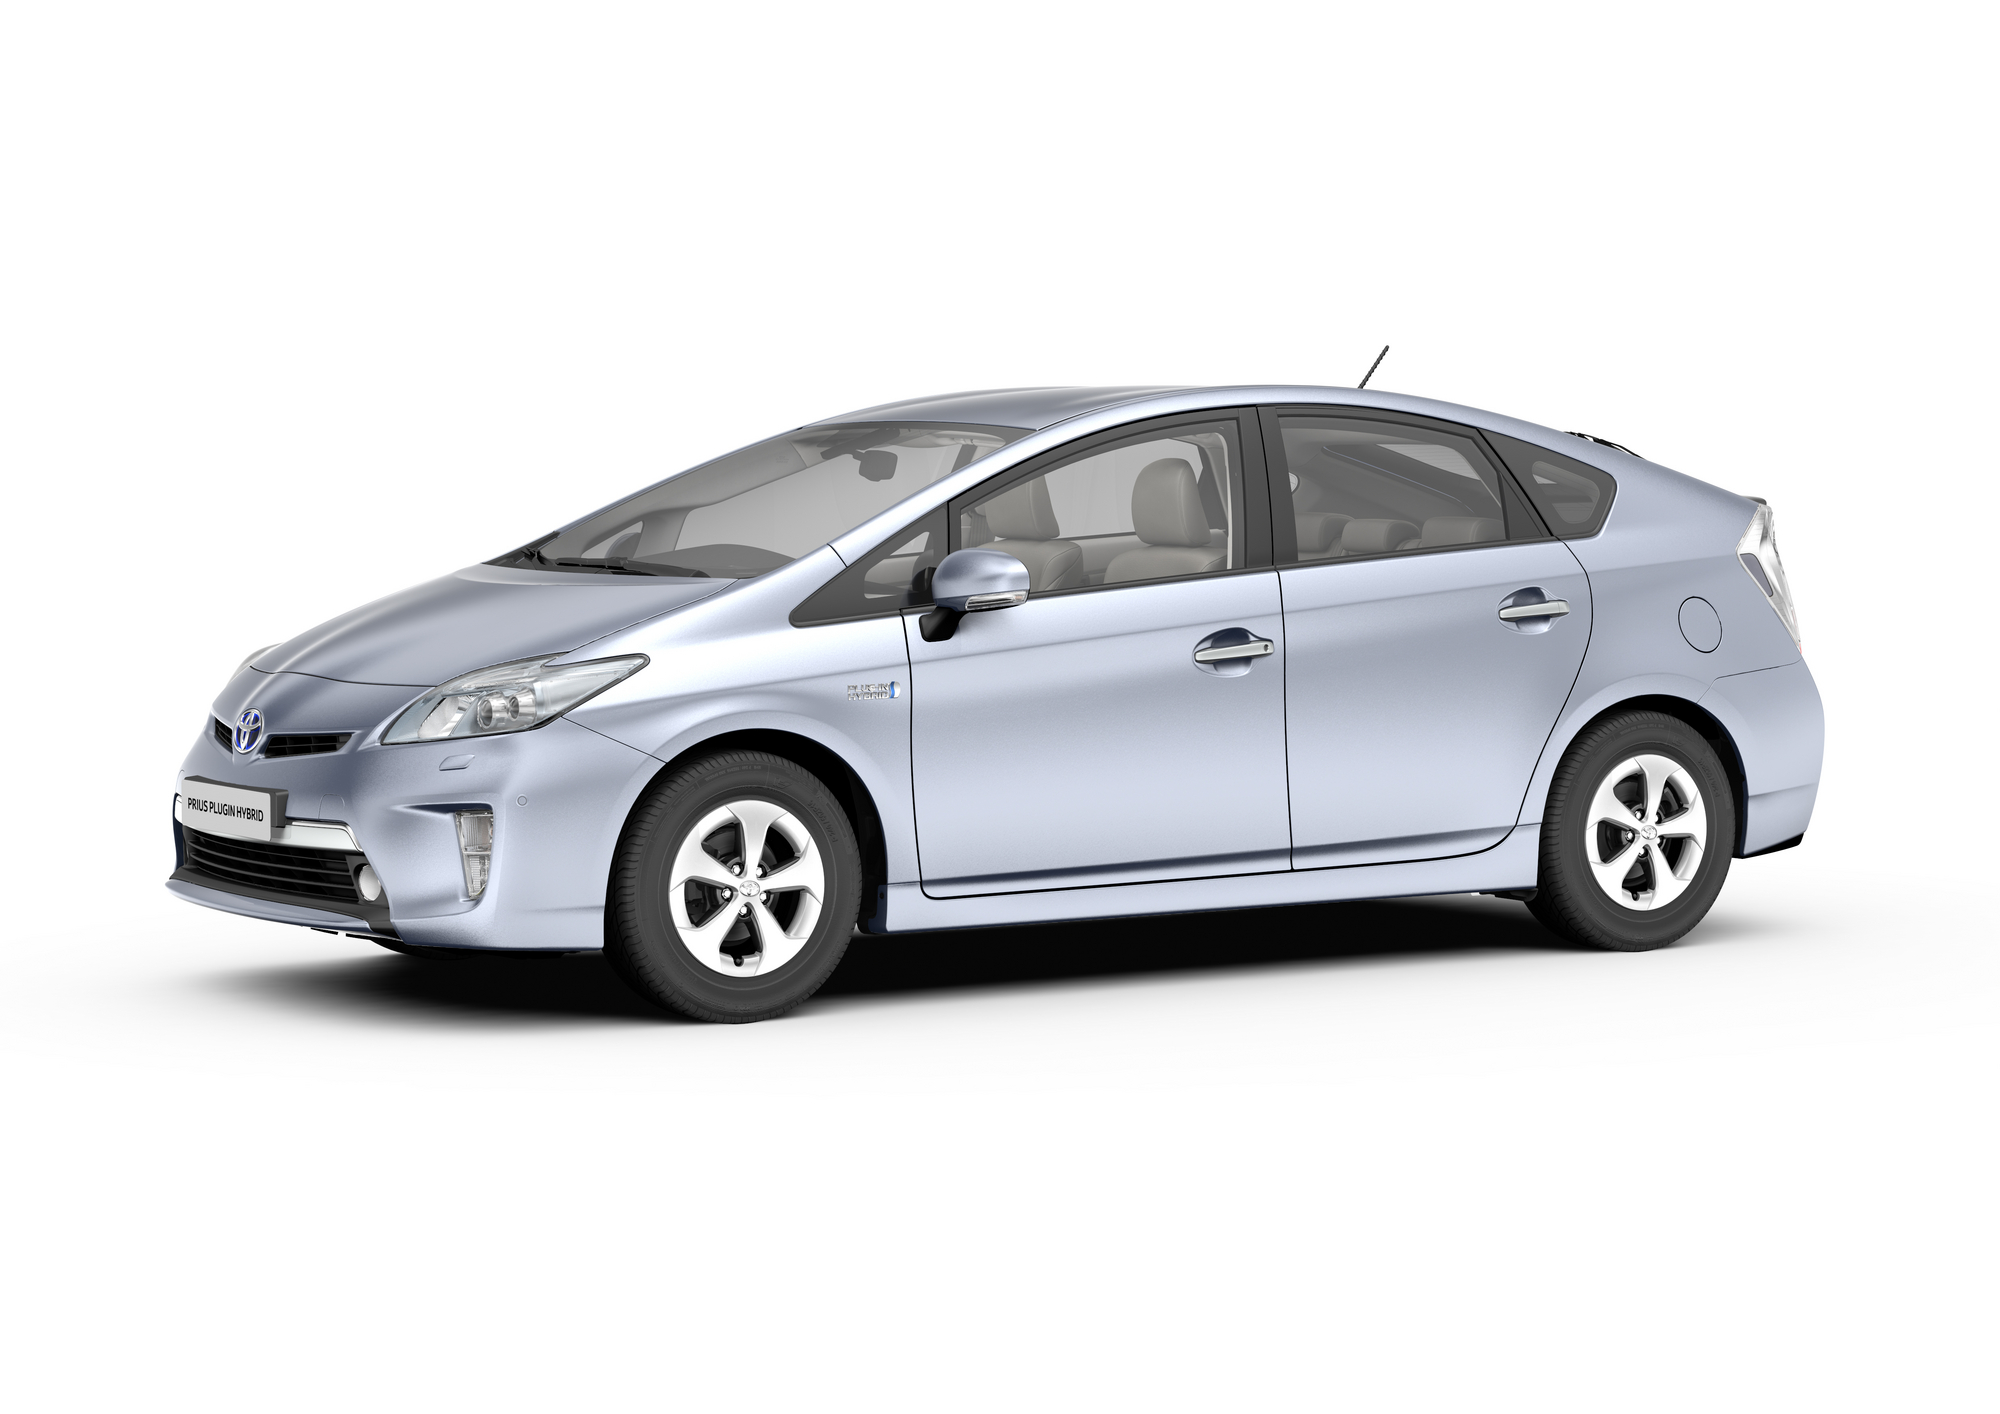 2.2 l/100km Plug-in Hybrid Prius to debut in Frankfurt